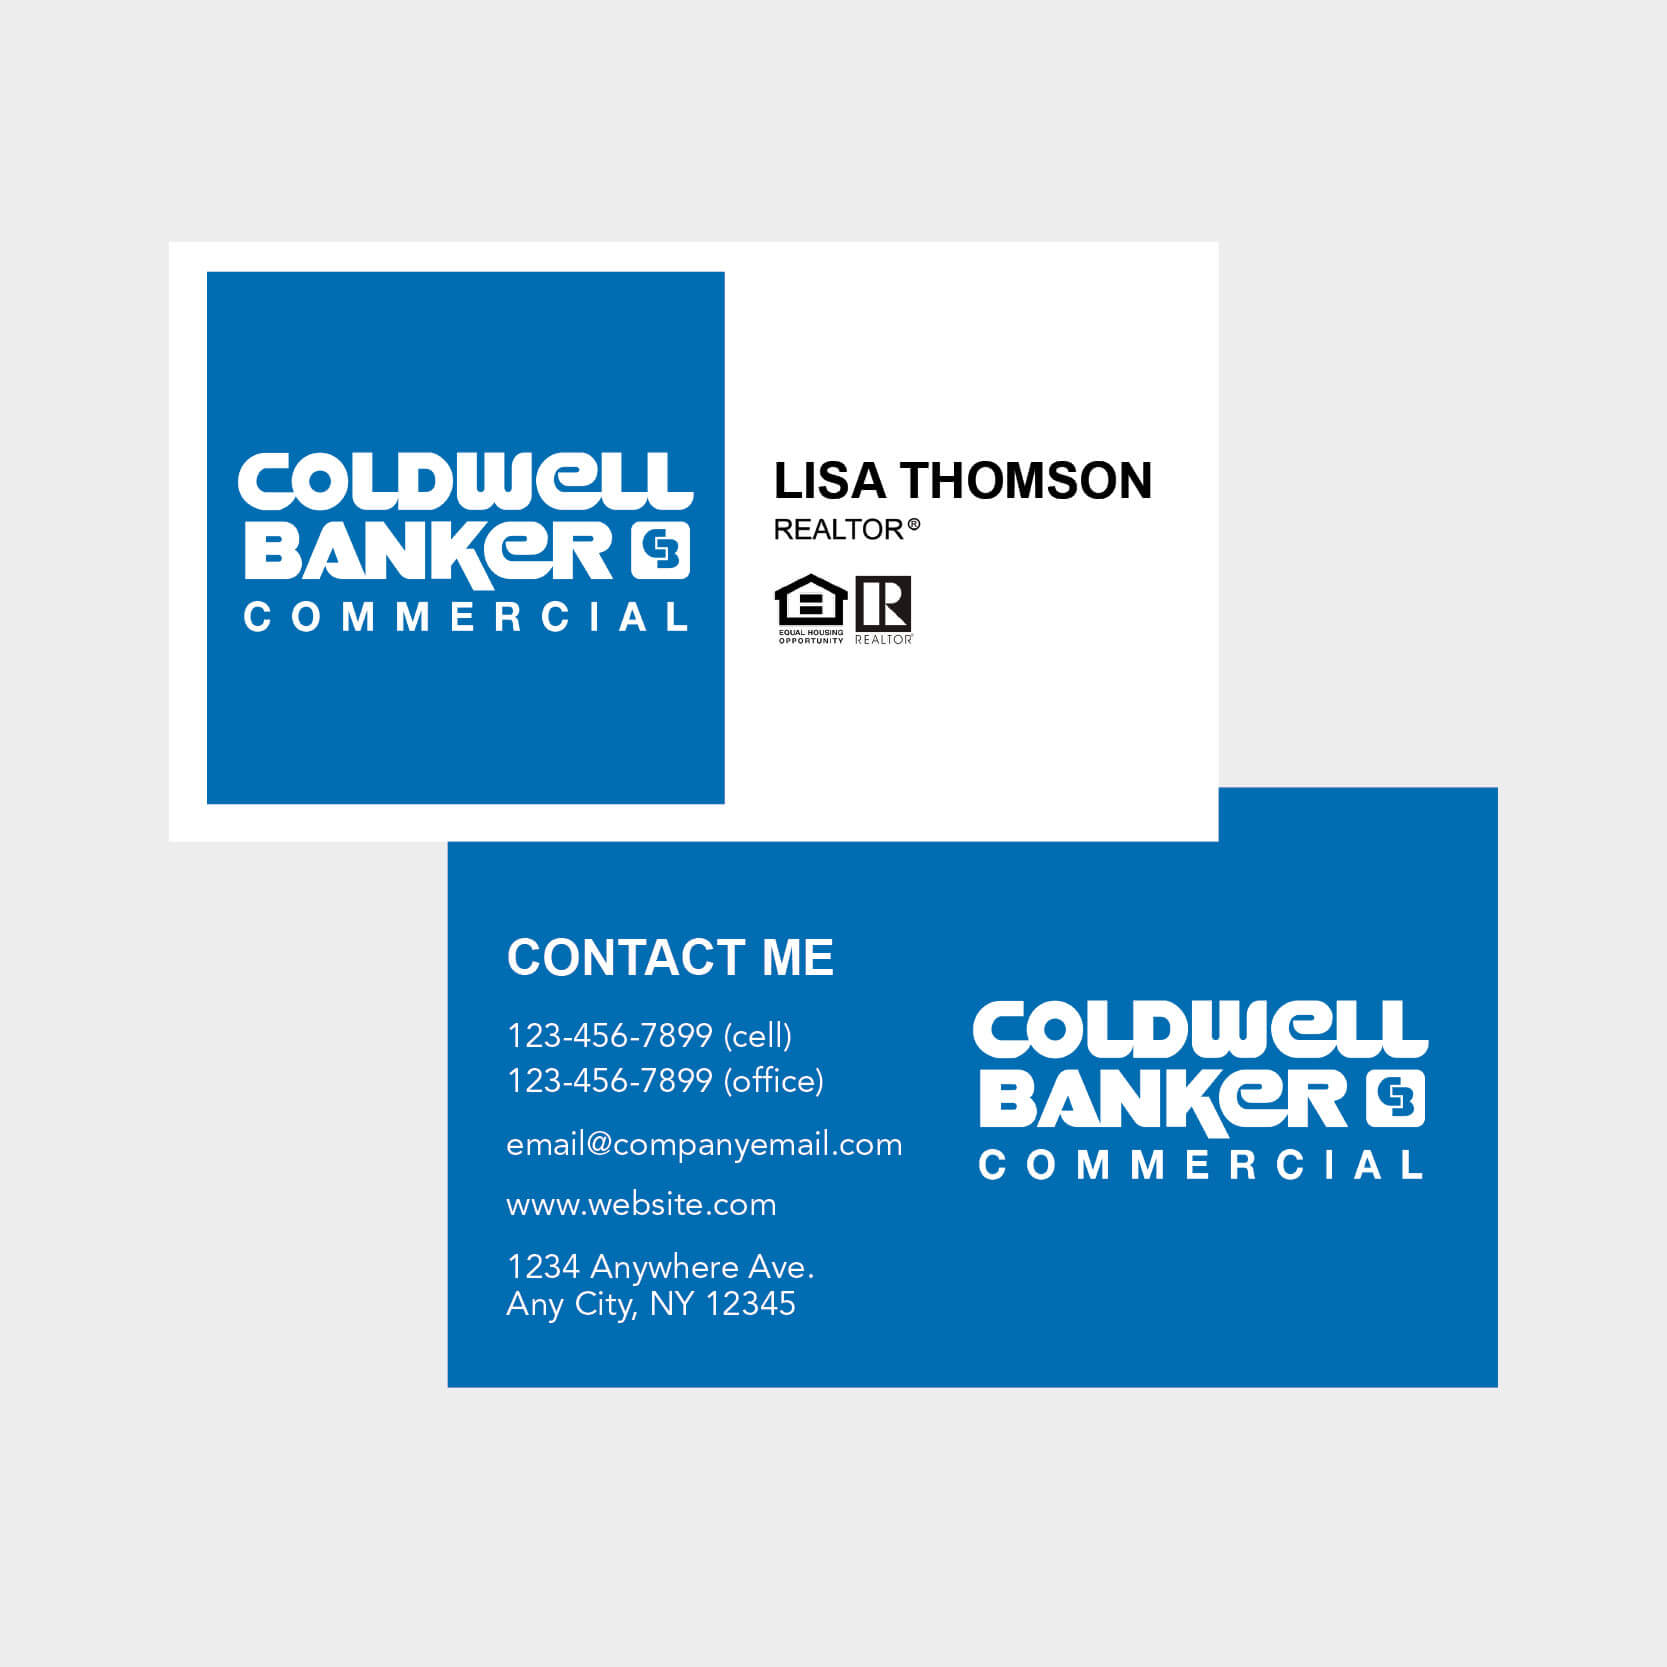 Coldwell Banker Business Card Pertaining To Coldwell Banker Business Card Template